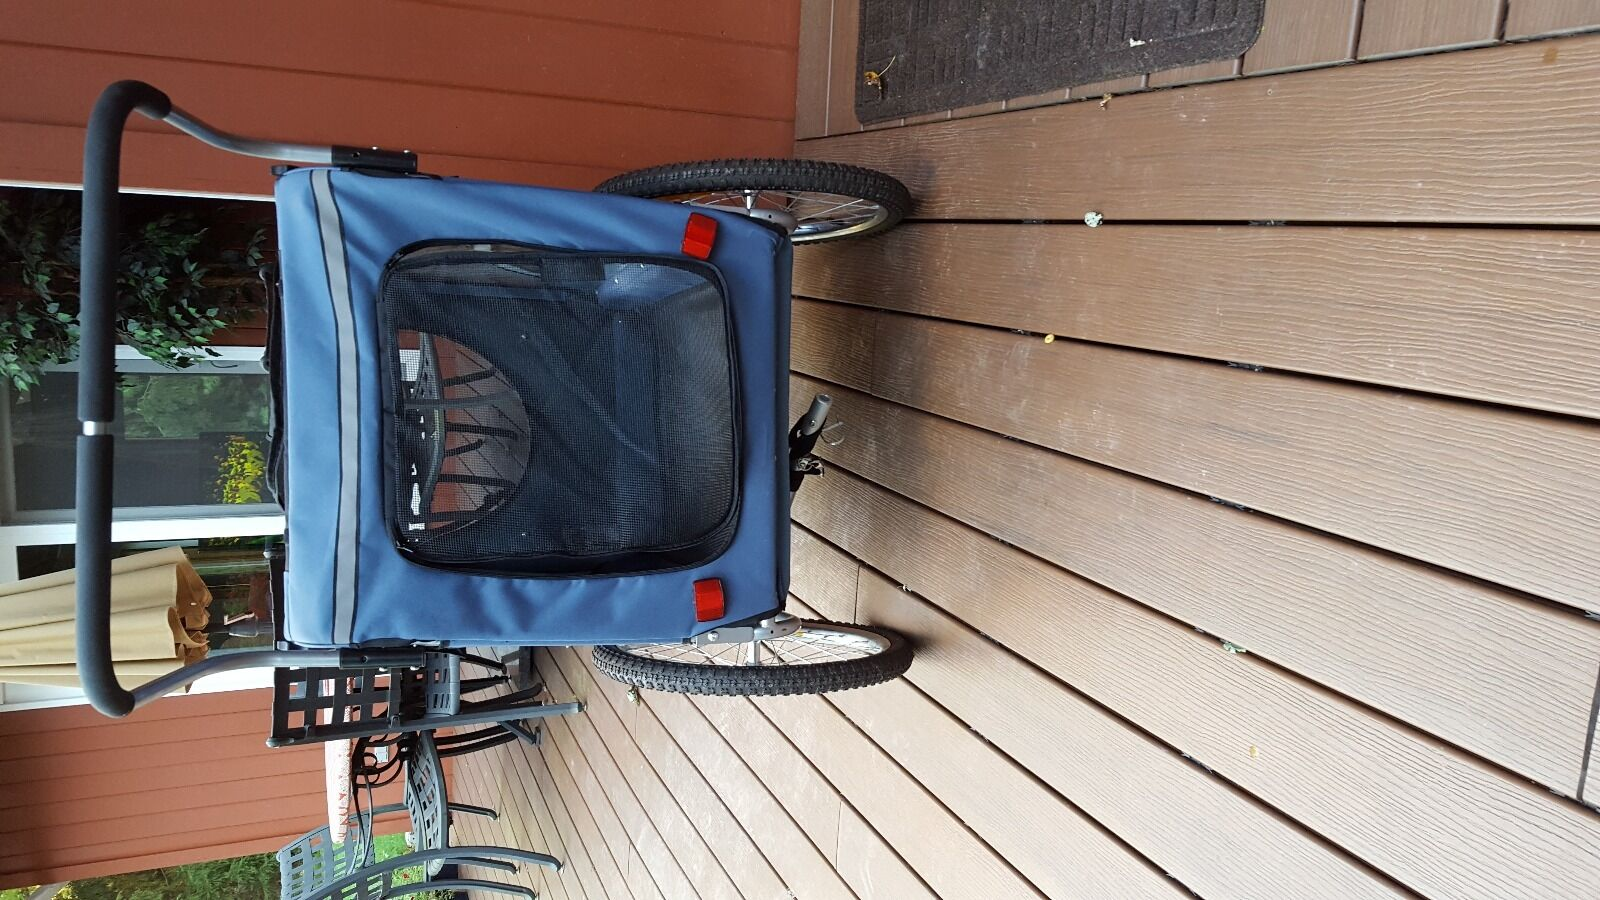 Carriage with zipper and extra wheel or bicycle attachment